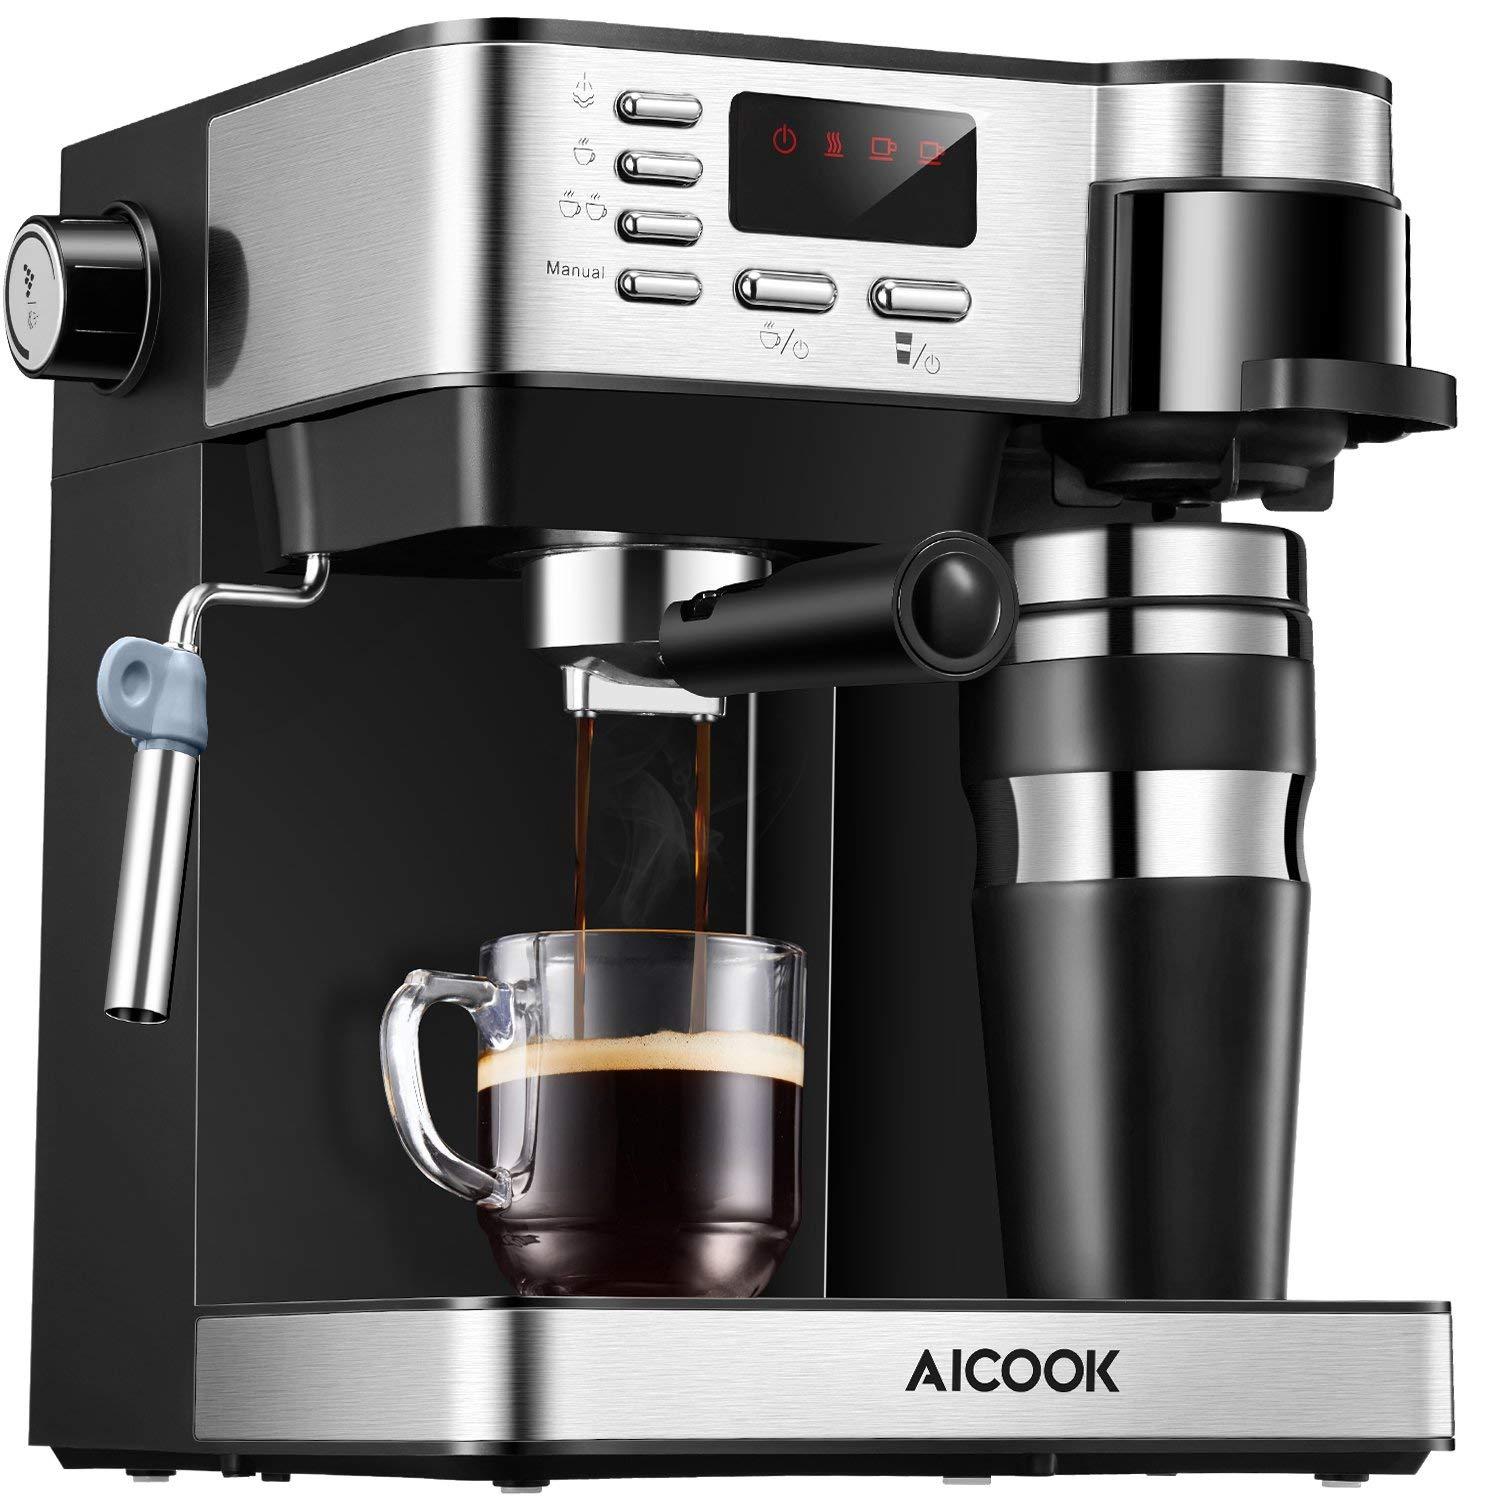 AICOOK Espresso and Coffee Machine, 3 in 1 Combination 15 Bar Espresso Machine and Single Serve Coffee Maker With Coffee Mug, Milk Frother for Cappuccino and Latte, Black (Renewed) by AICOOK